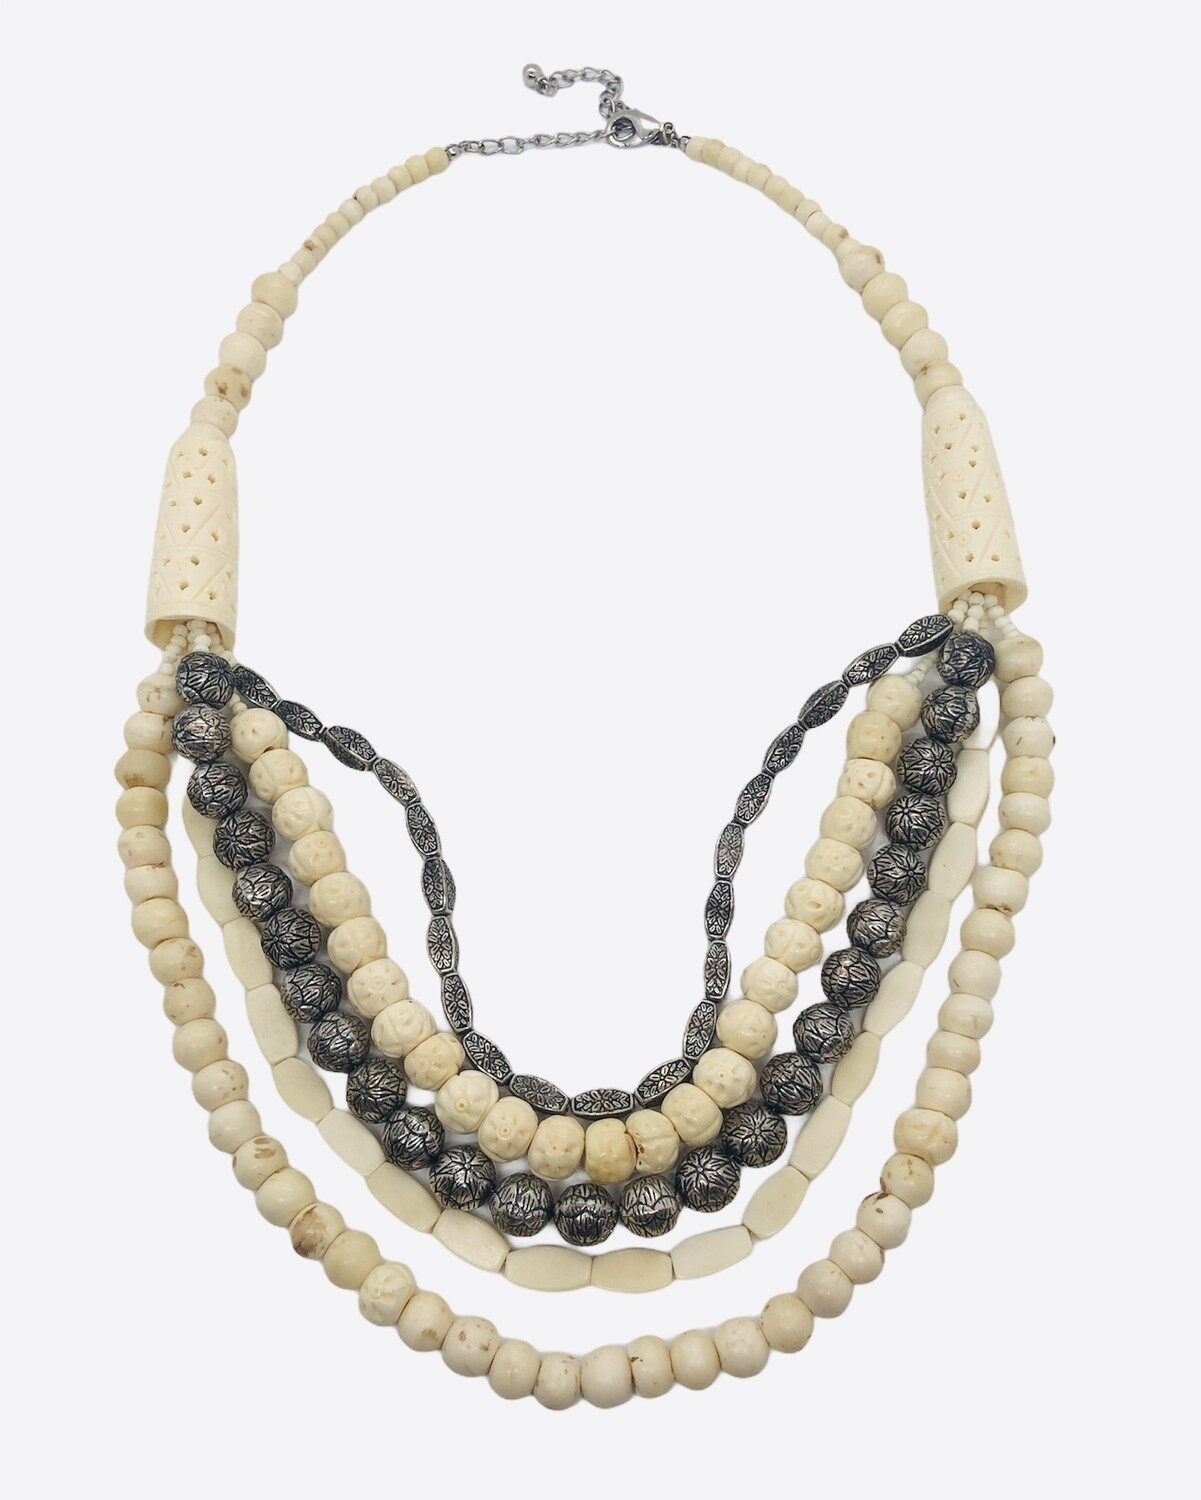 CHICOS Etched Bone & Silver Multi Strand Necklace